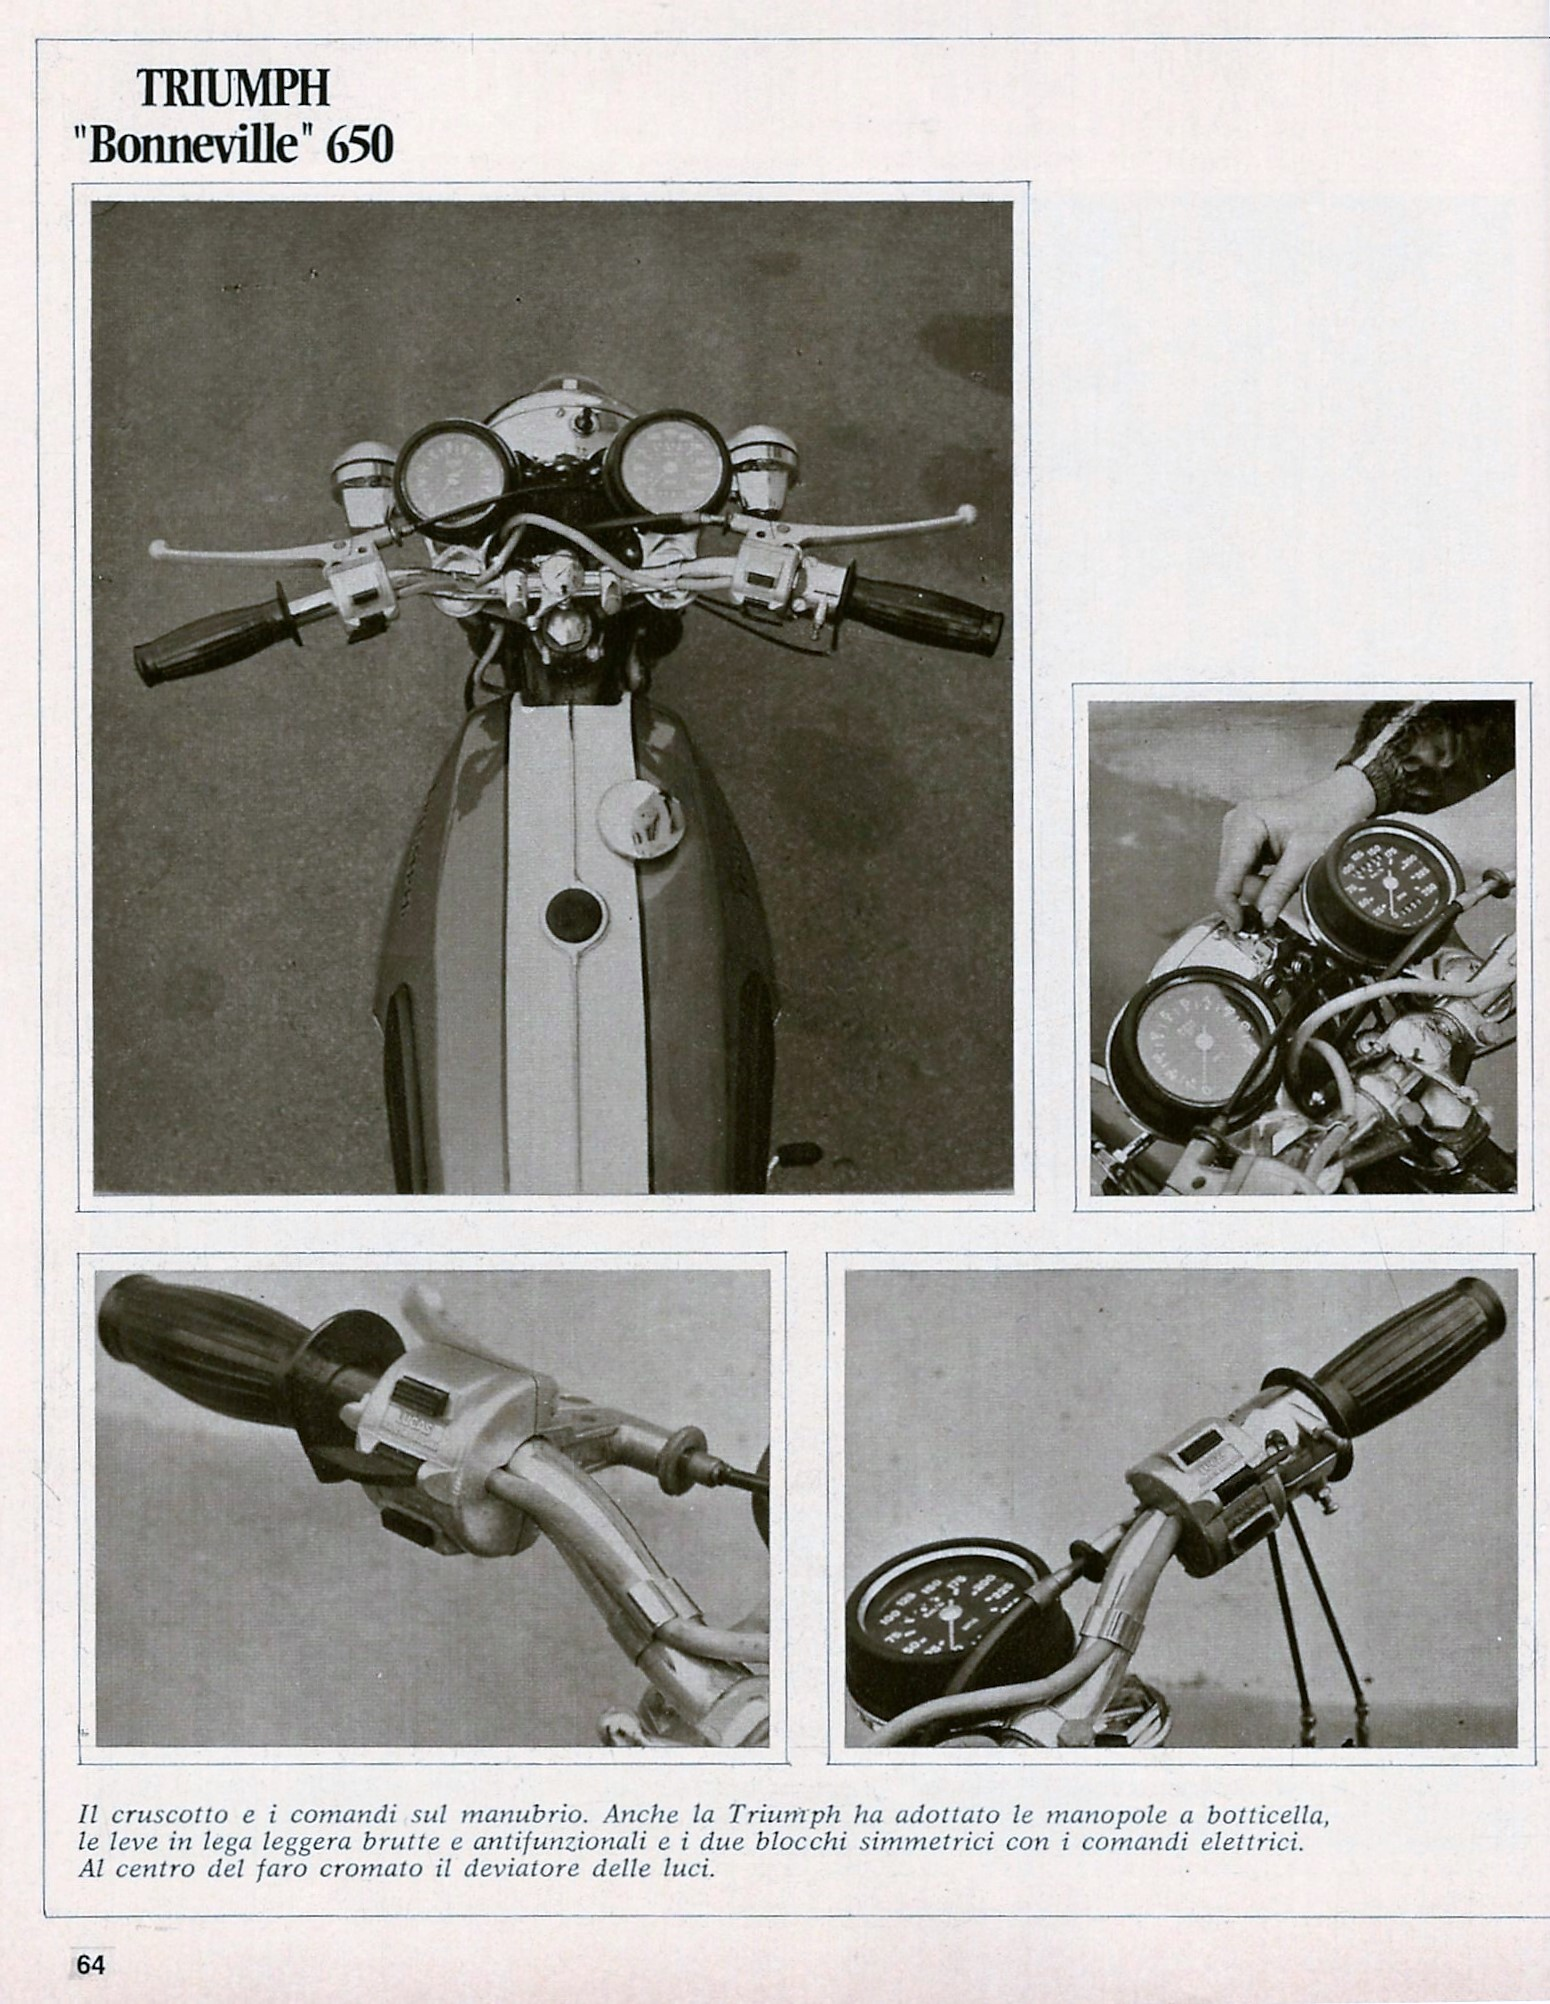 1972 Triumph Bonneville road test.7.jpg